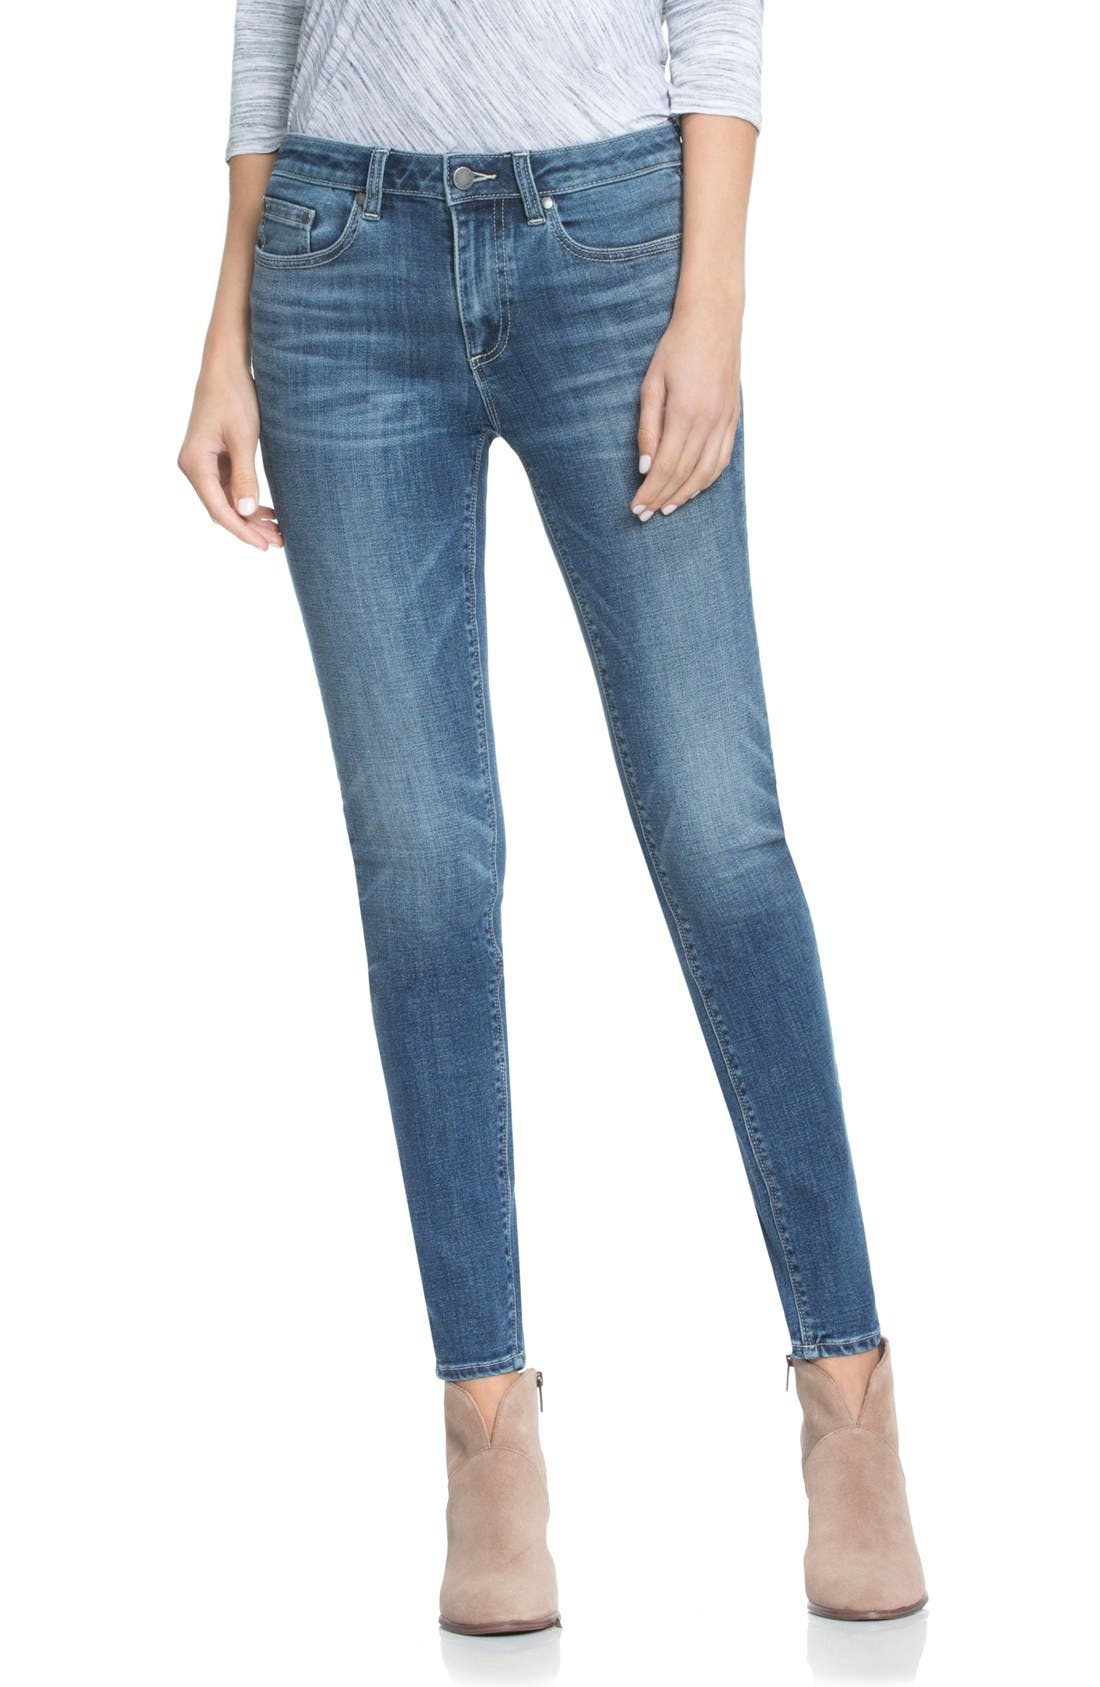 Alternate Image 1 Selected - Two by Vince Camuto Classic Five-Pocket Skinny Jeans